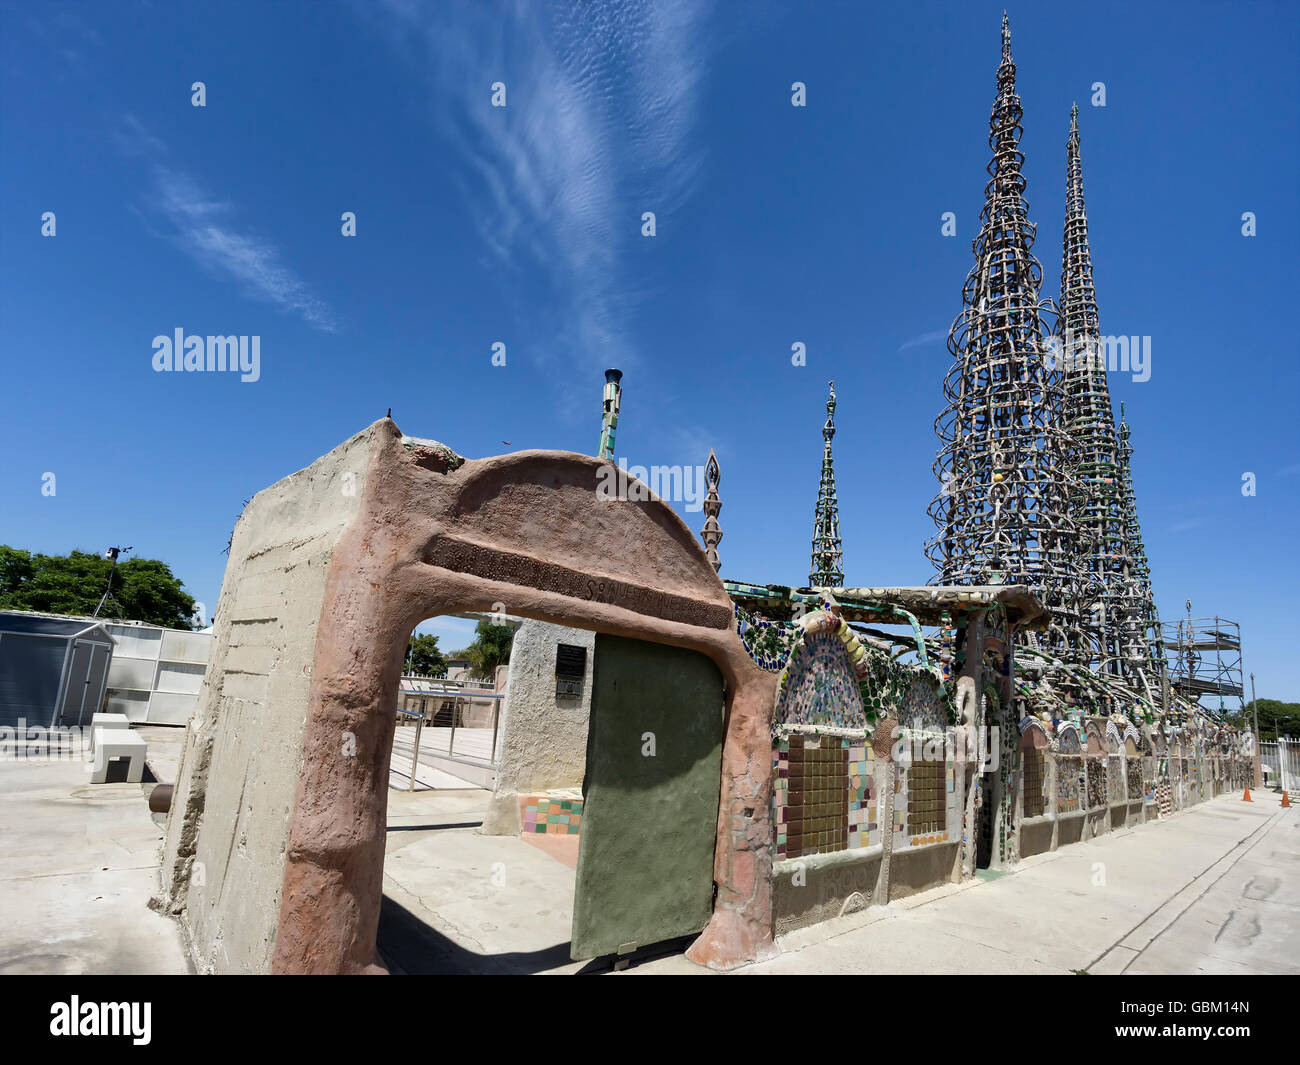 Watts Towers in Los Angeles. A collection of 17 interconnected sculptural structures - Stock Image